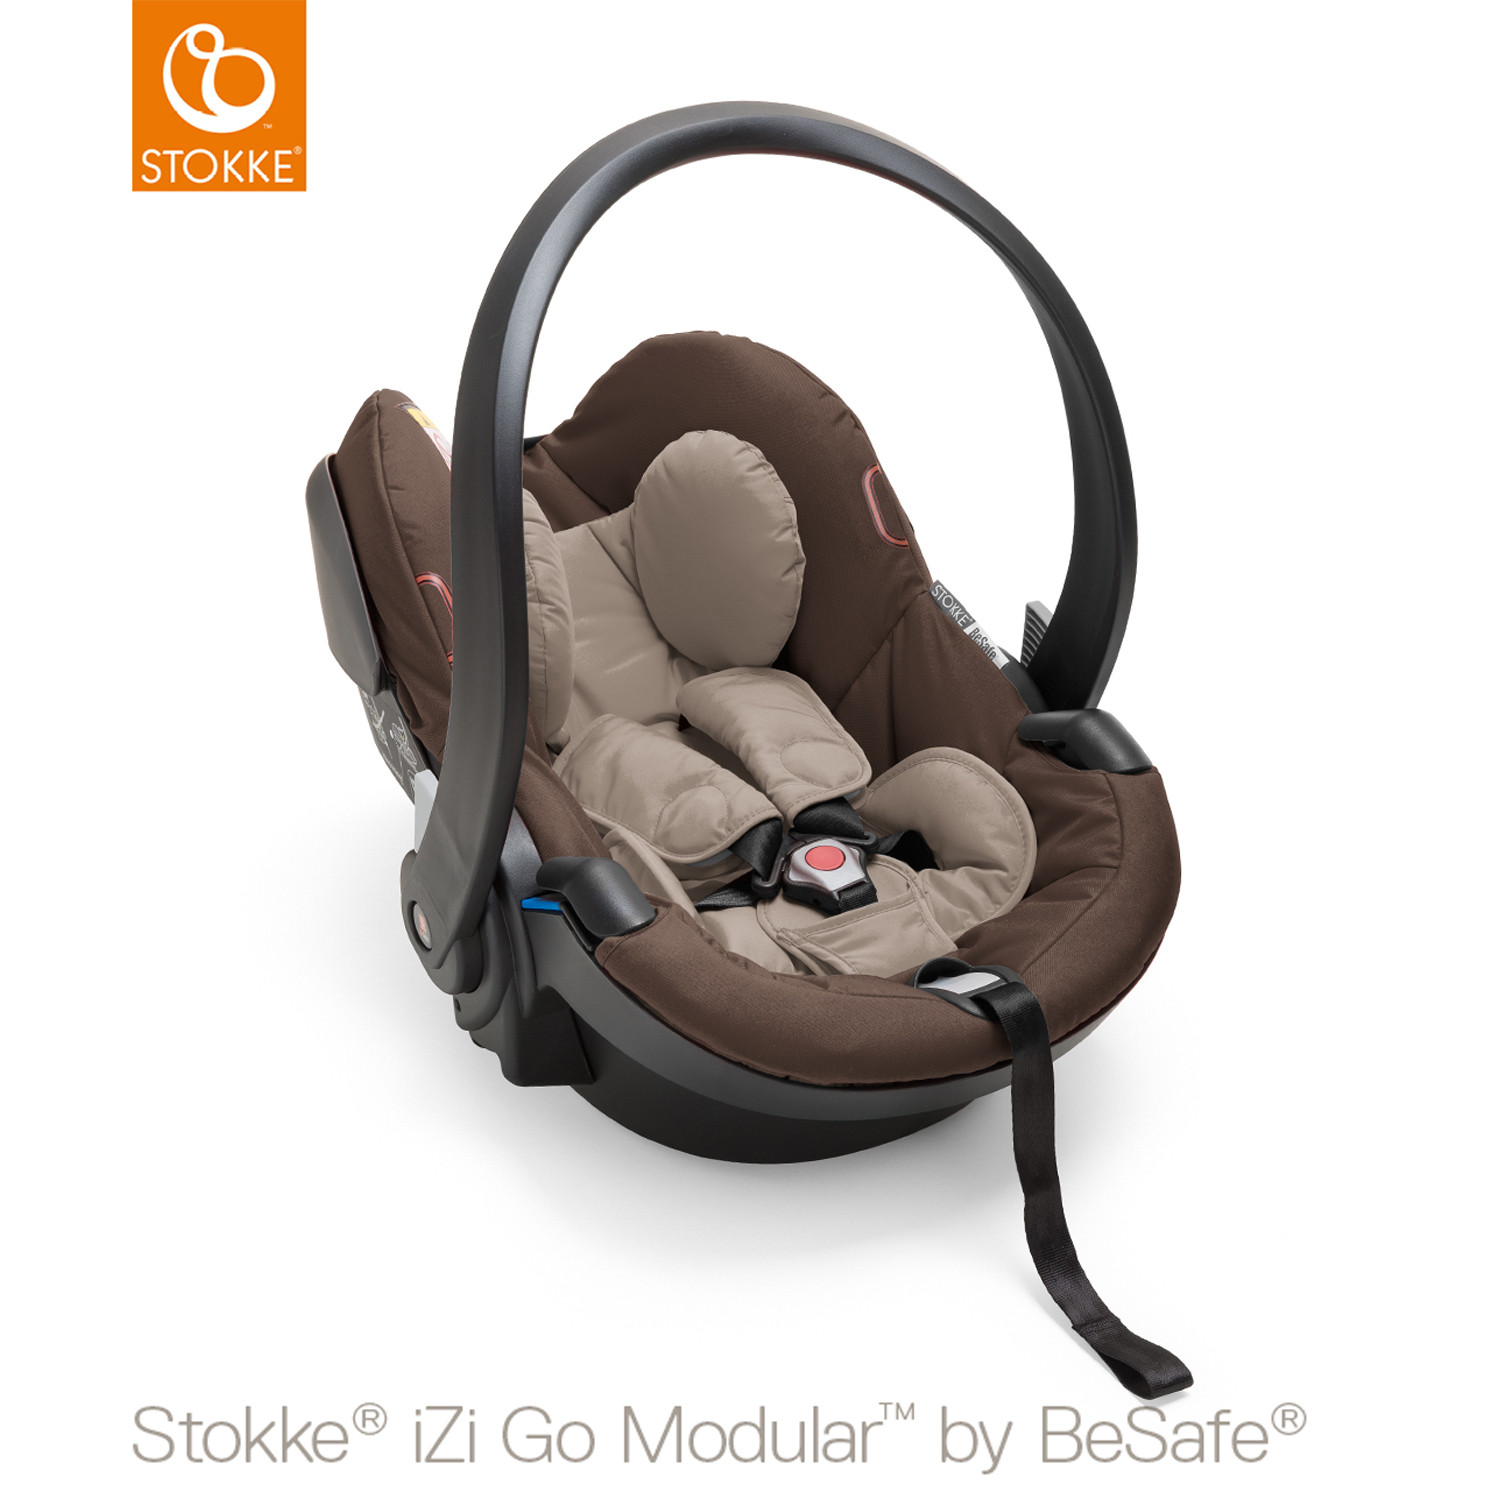 stokke izi go modular by besafe baby autostoeltje babypark. Black Bedroom Furniture Sets. Home Design Ideas